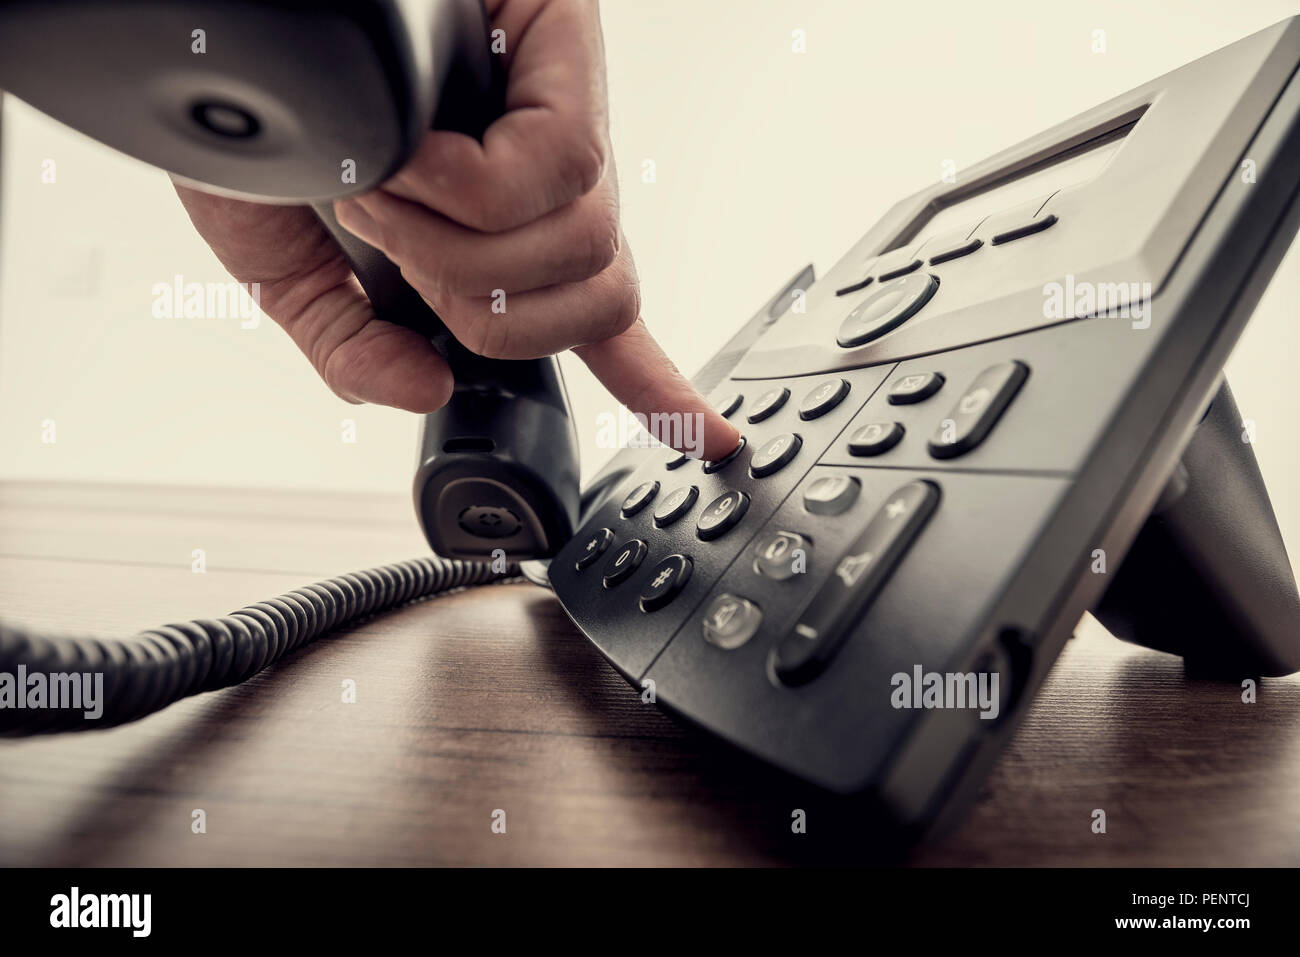 Closeup of male hand holding telephone receiver and dialing a phone number on a classical black landline telephone. Retro filter effect. - Stock Image